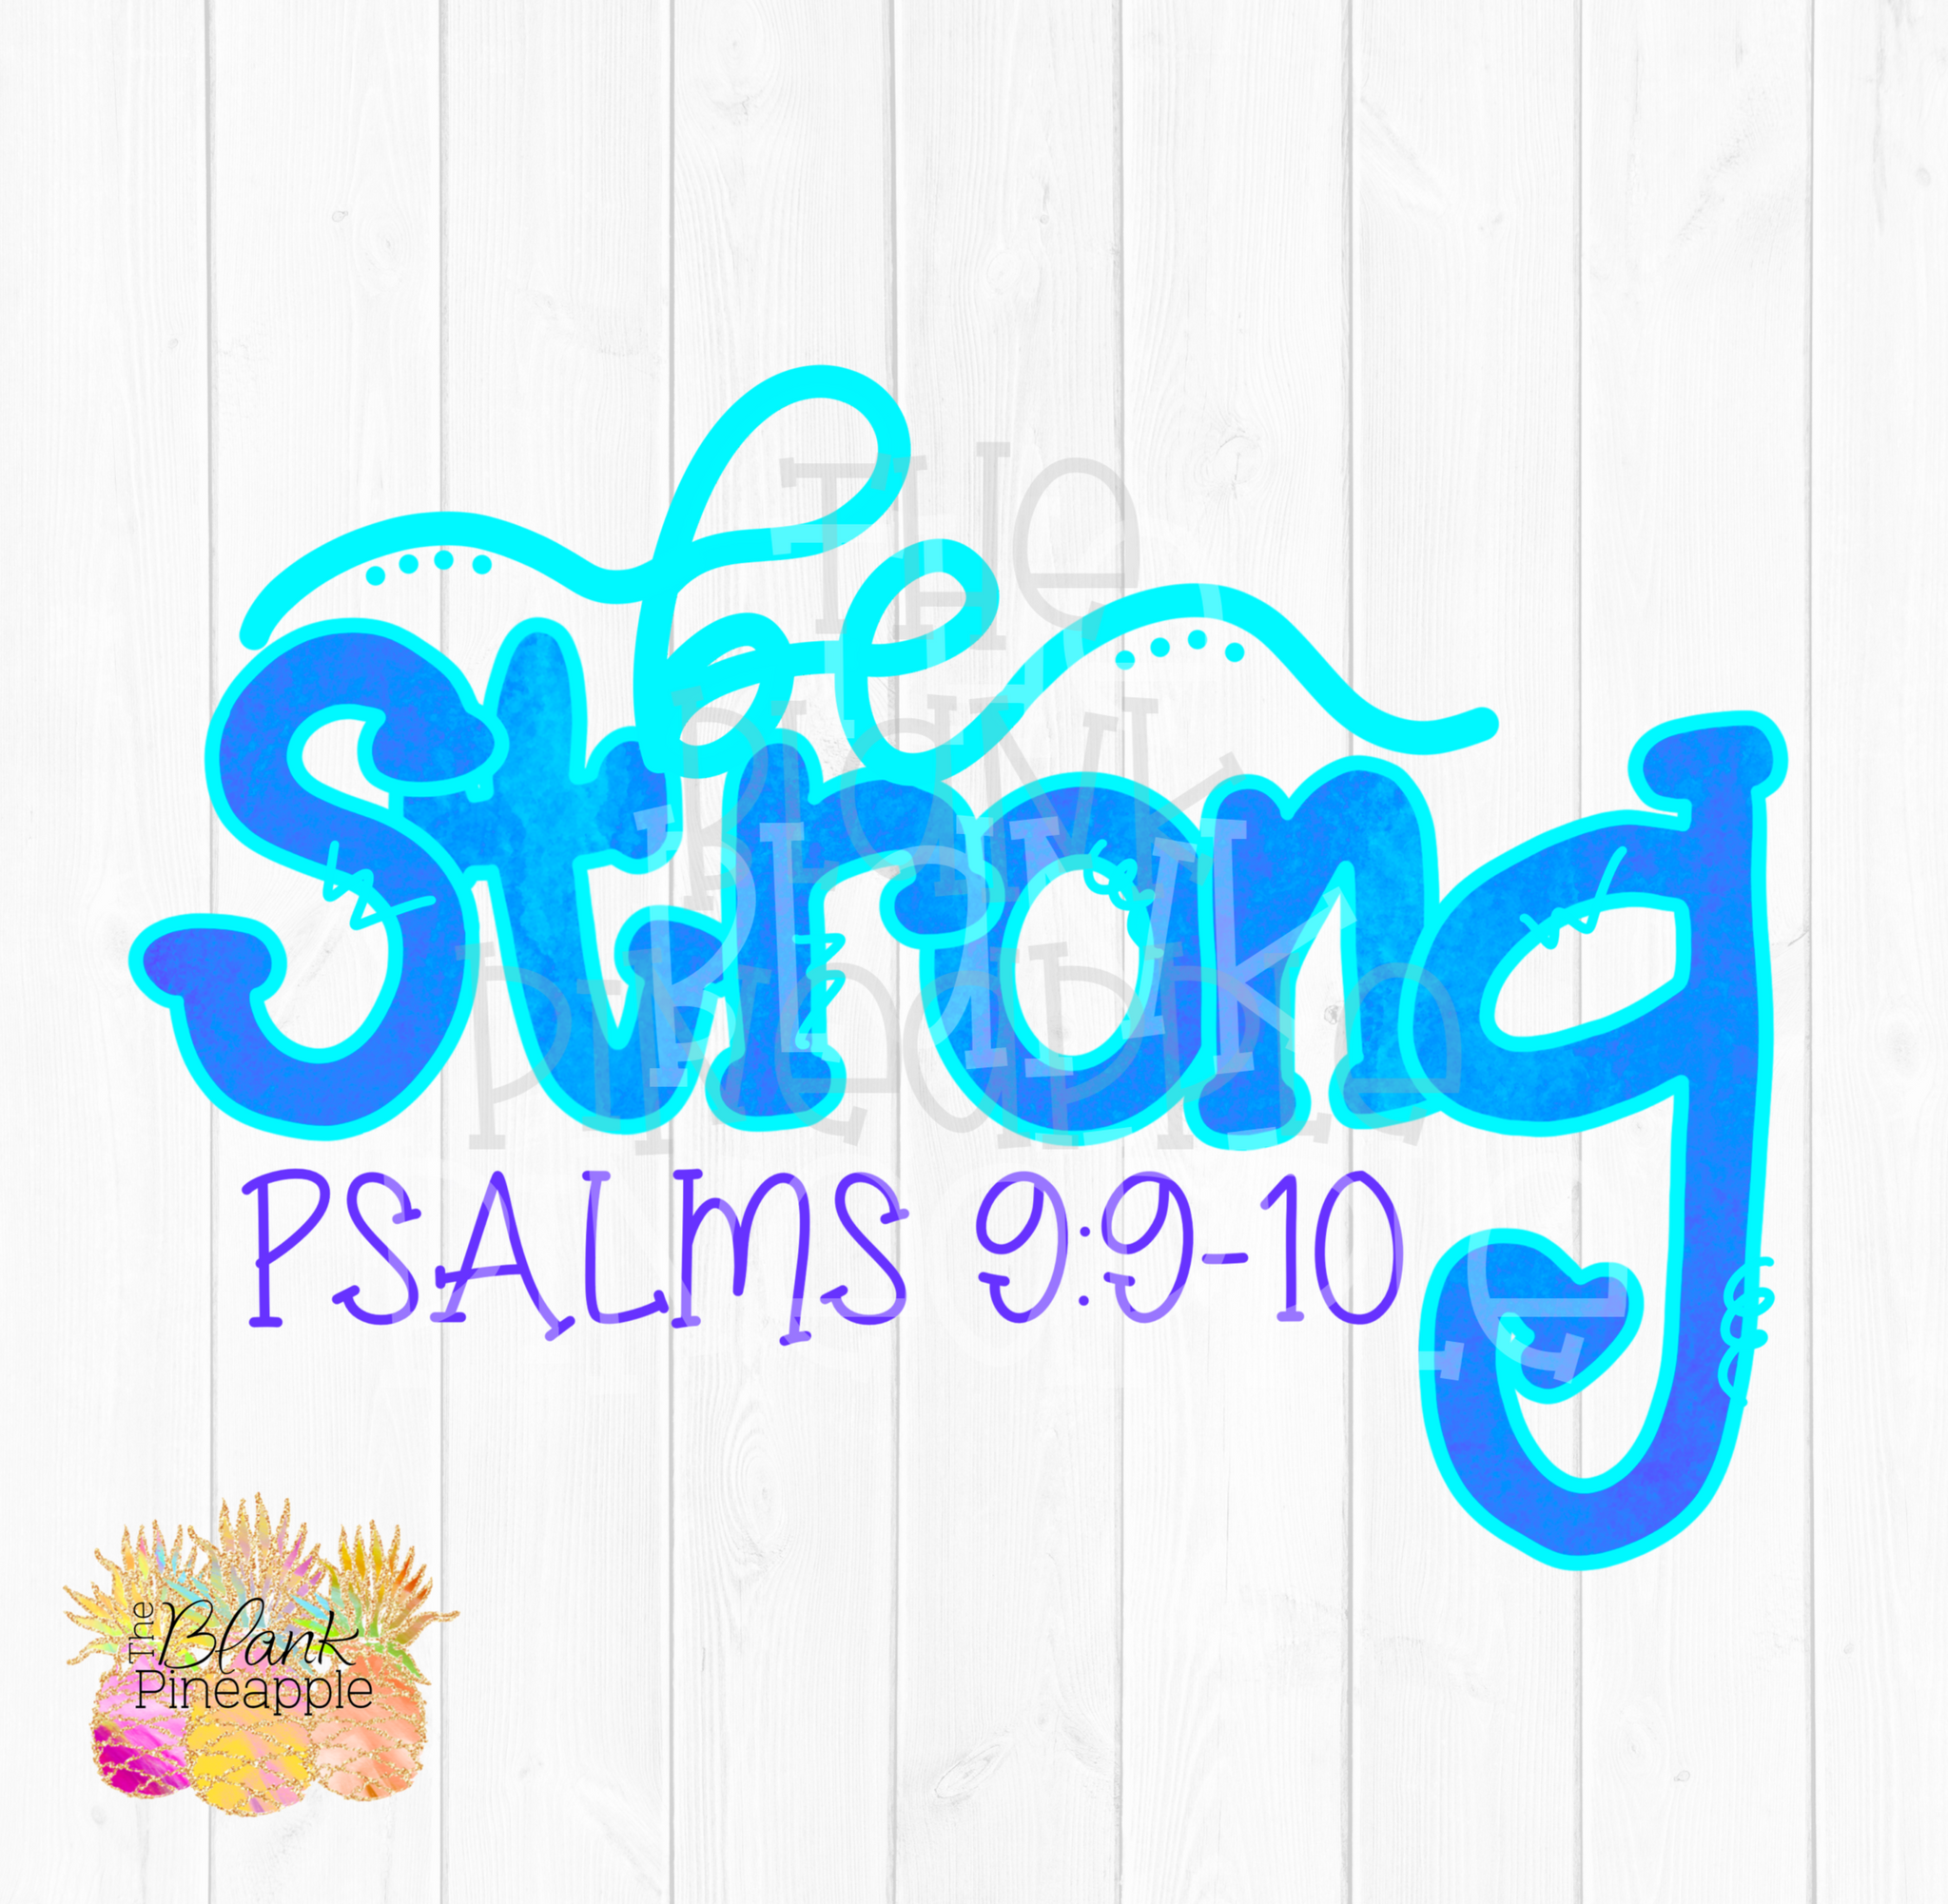 Be Strong Psalms 9:9 Sublimation Design PNG